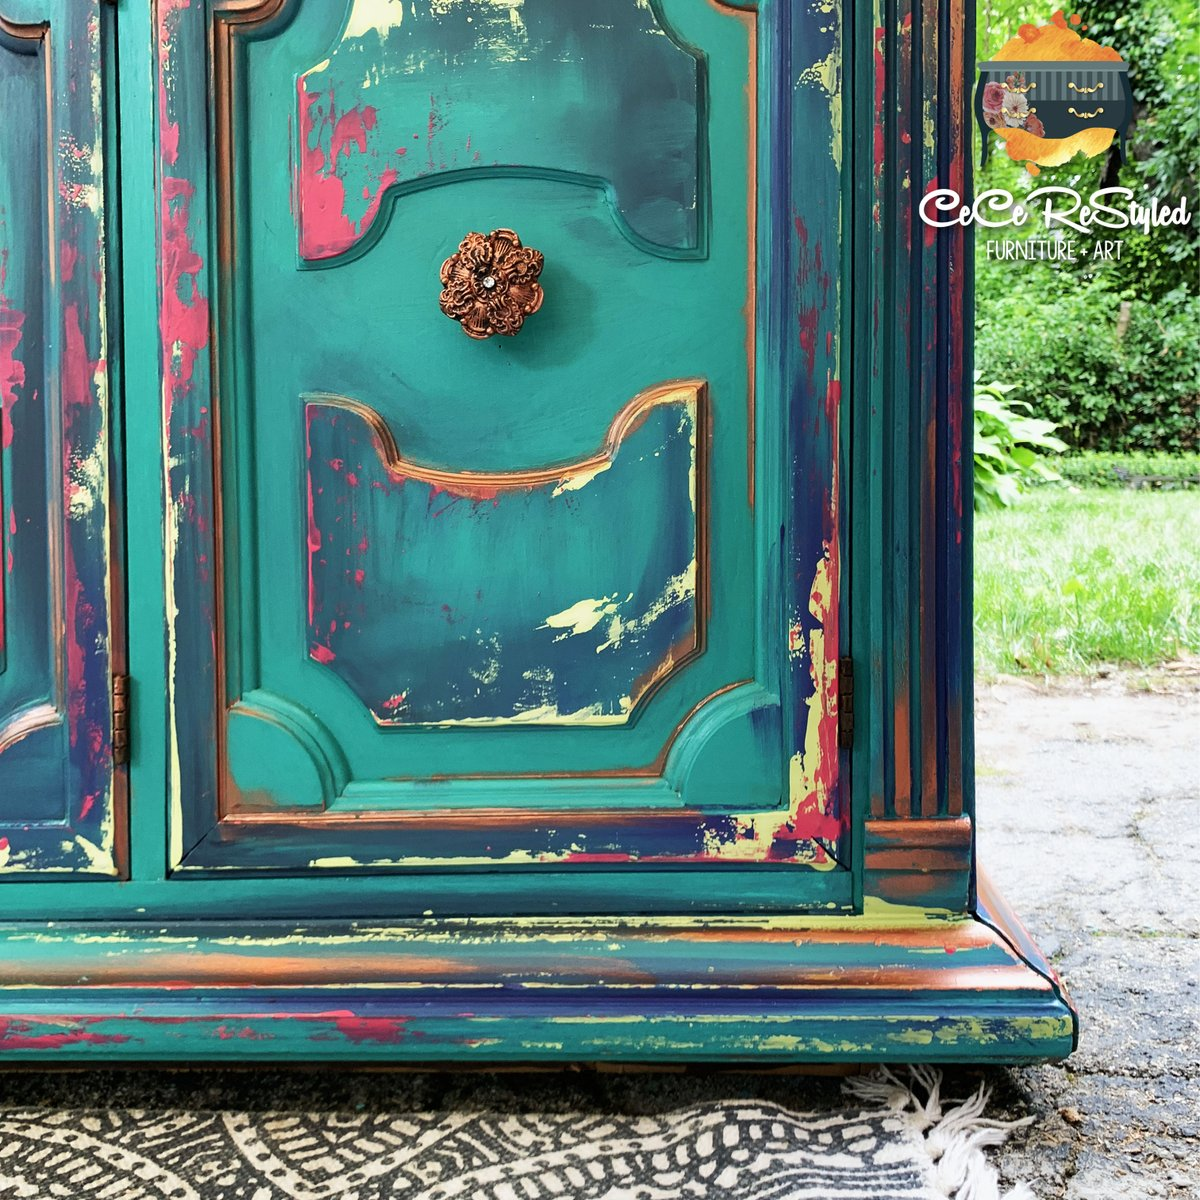 Dixie Belle Paint Company On Twitter What Boho Dreams Are Made Of This Vibrant China Cabinet Was Vividly Painted In The Colors Mermaid Tail Pure Ocean The Gulf Limeade Peony Aubergine And